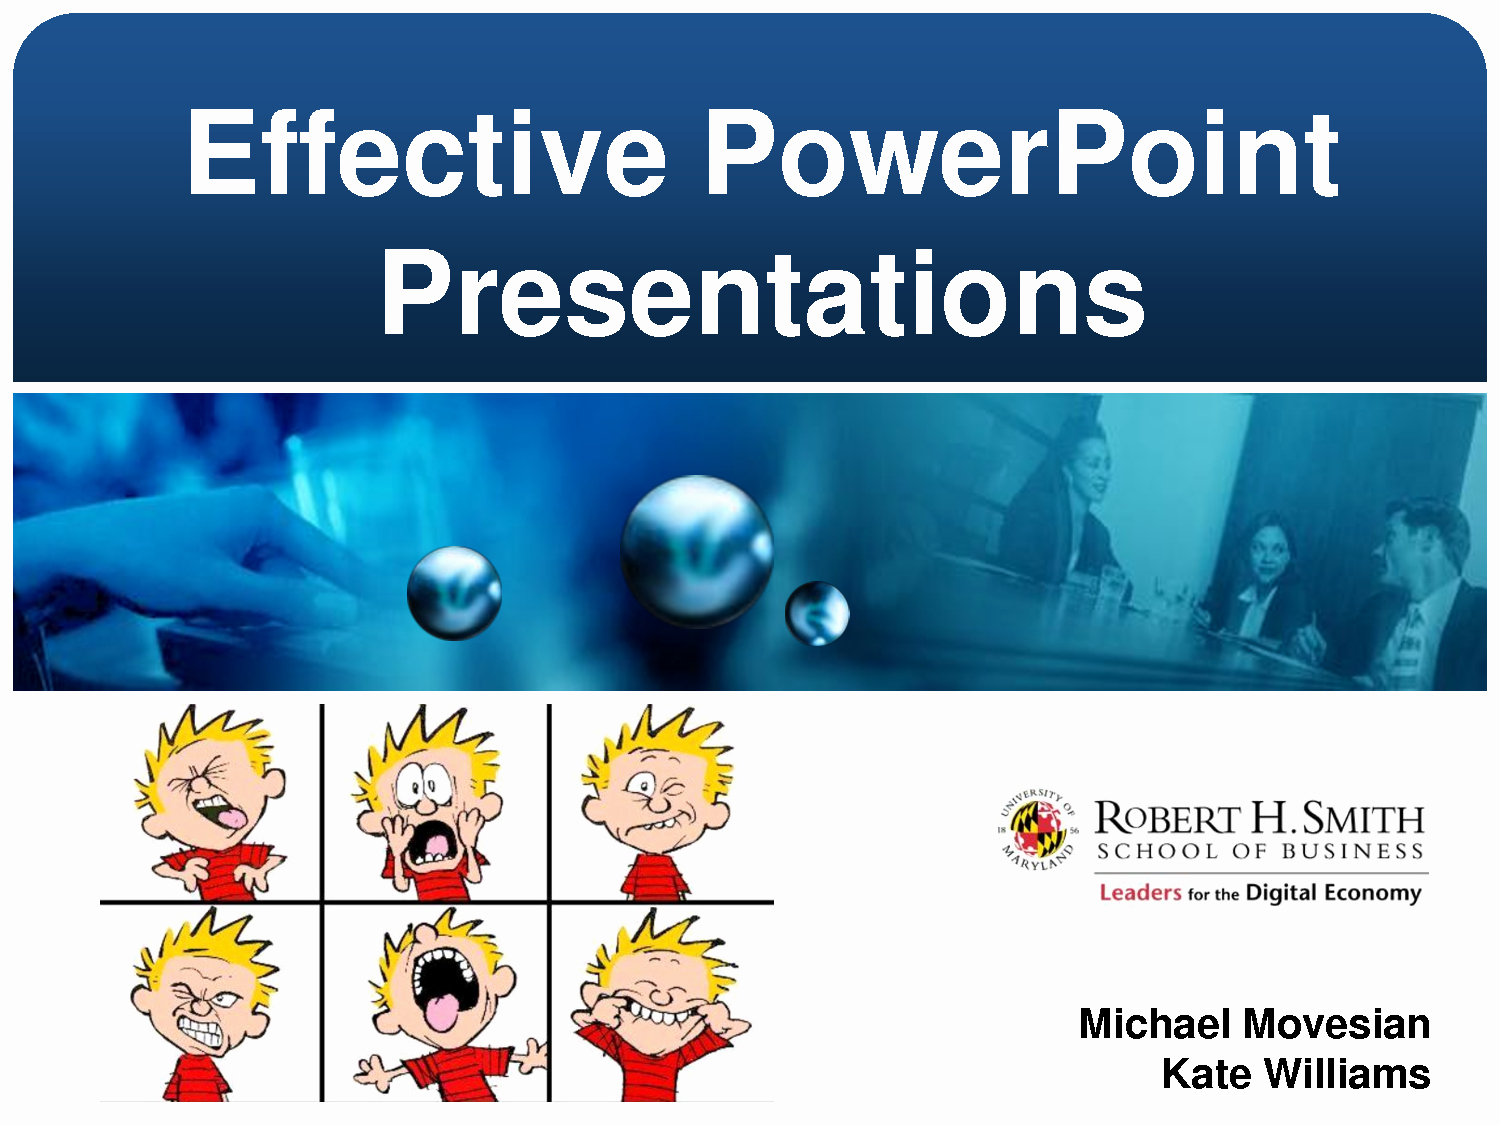 Animated Powerpoint themes 2010 Free Powerpoint